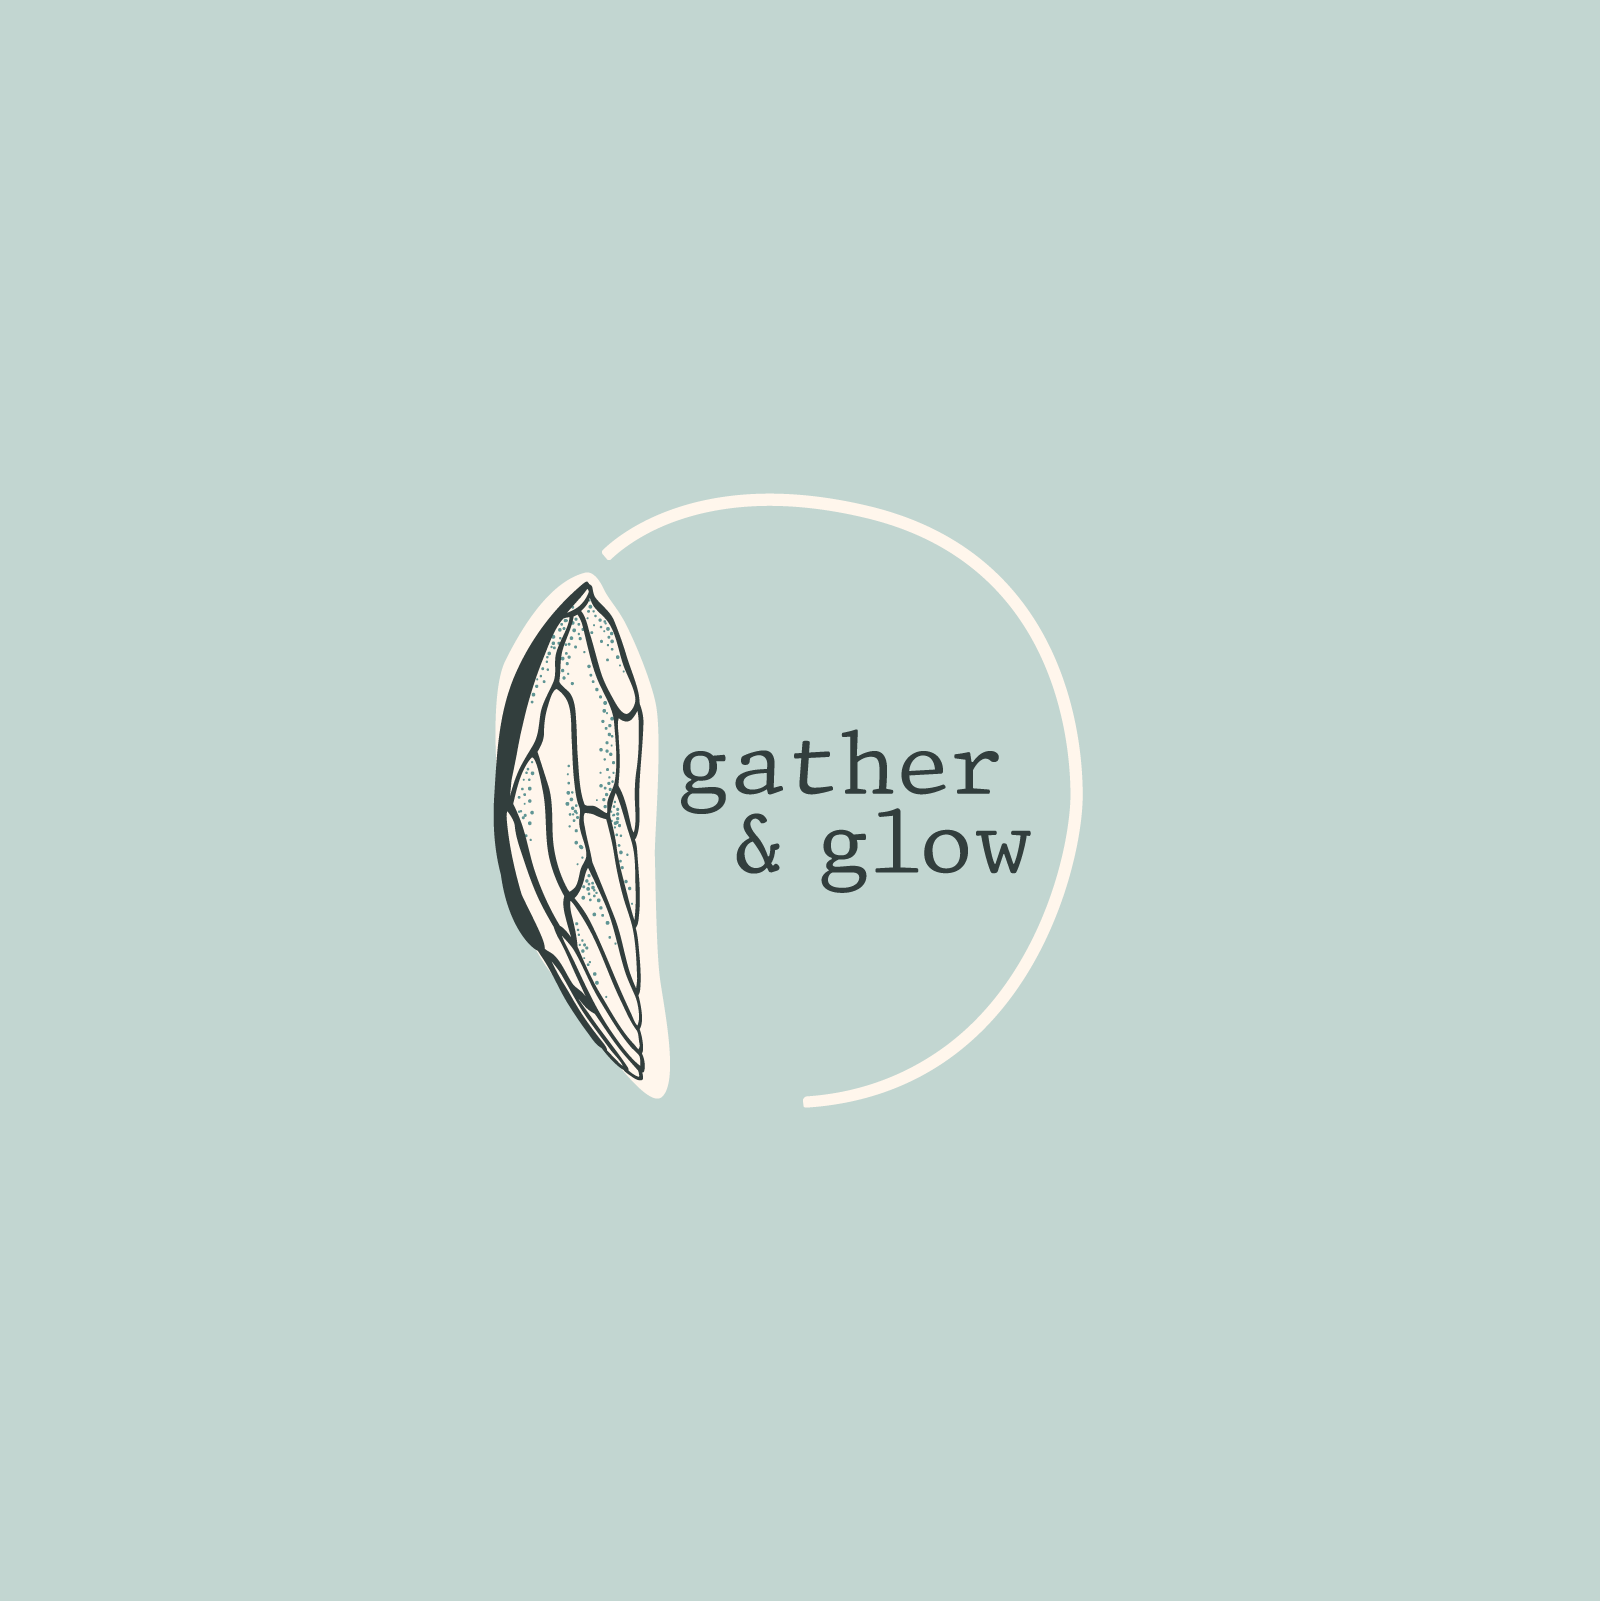 gather-and-glow-logo-alt-green.png